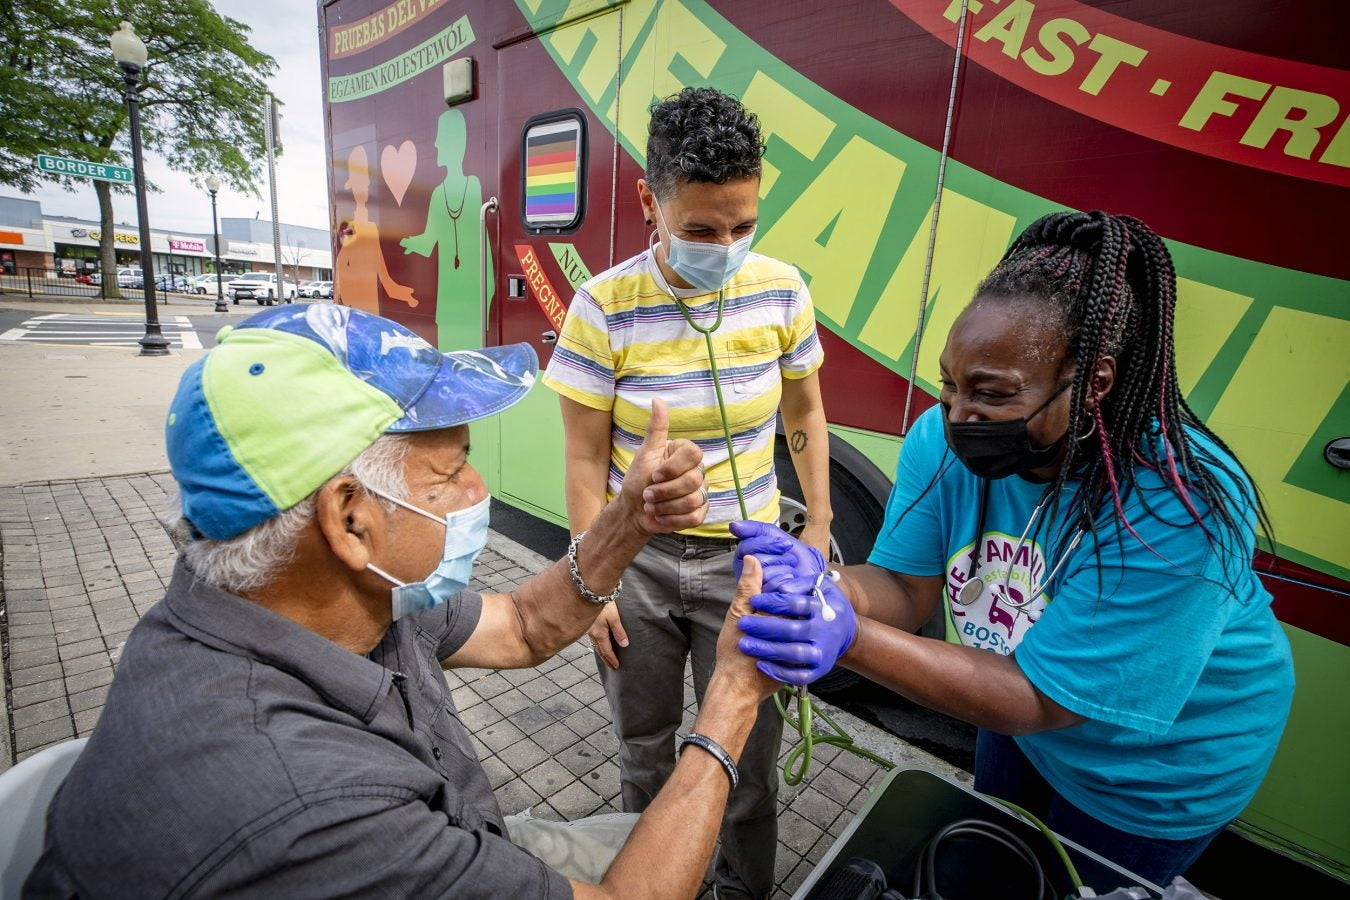 Simone de Oliveira, center and Rainelle Walker White, right, assistant director, work together to administer a blood pressure test to Wilson Viana Silva of E. Boston at Harvard University's Family Van.